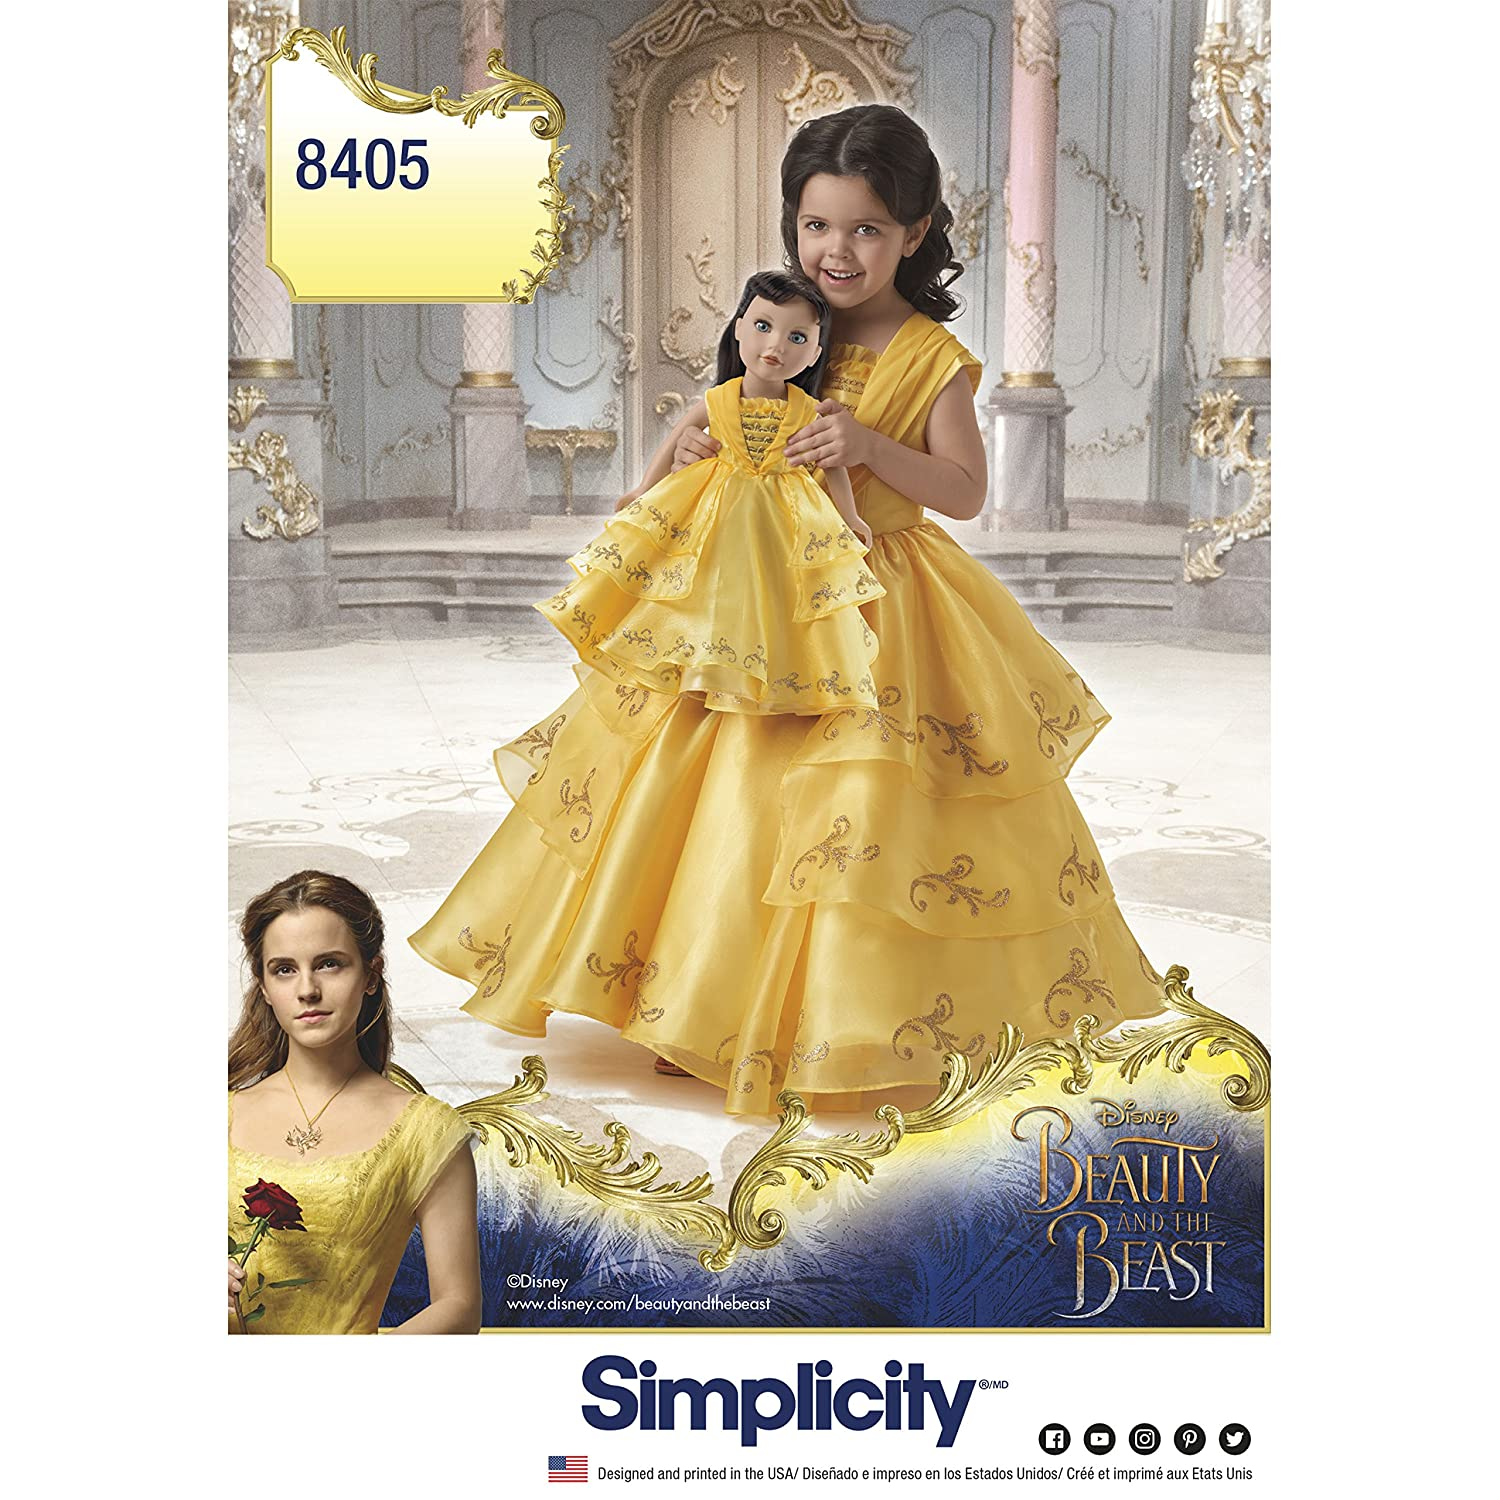 Simplicity 8405 Beauty and the Beast Costume for Child and 18 inch Doll (SIZE 3-8) SEWING PATTERN